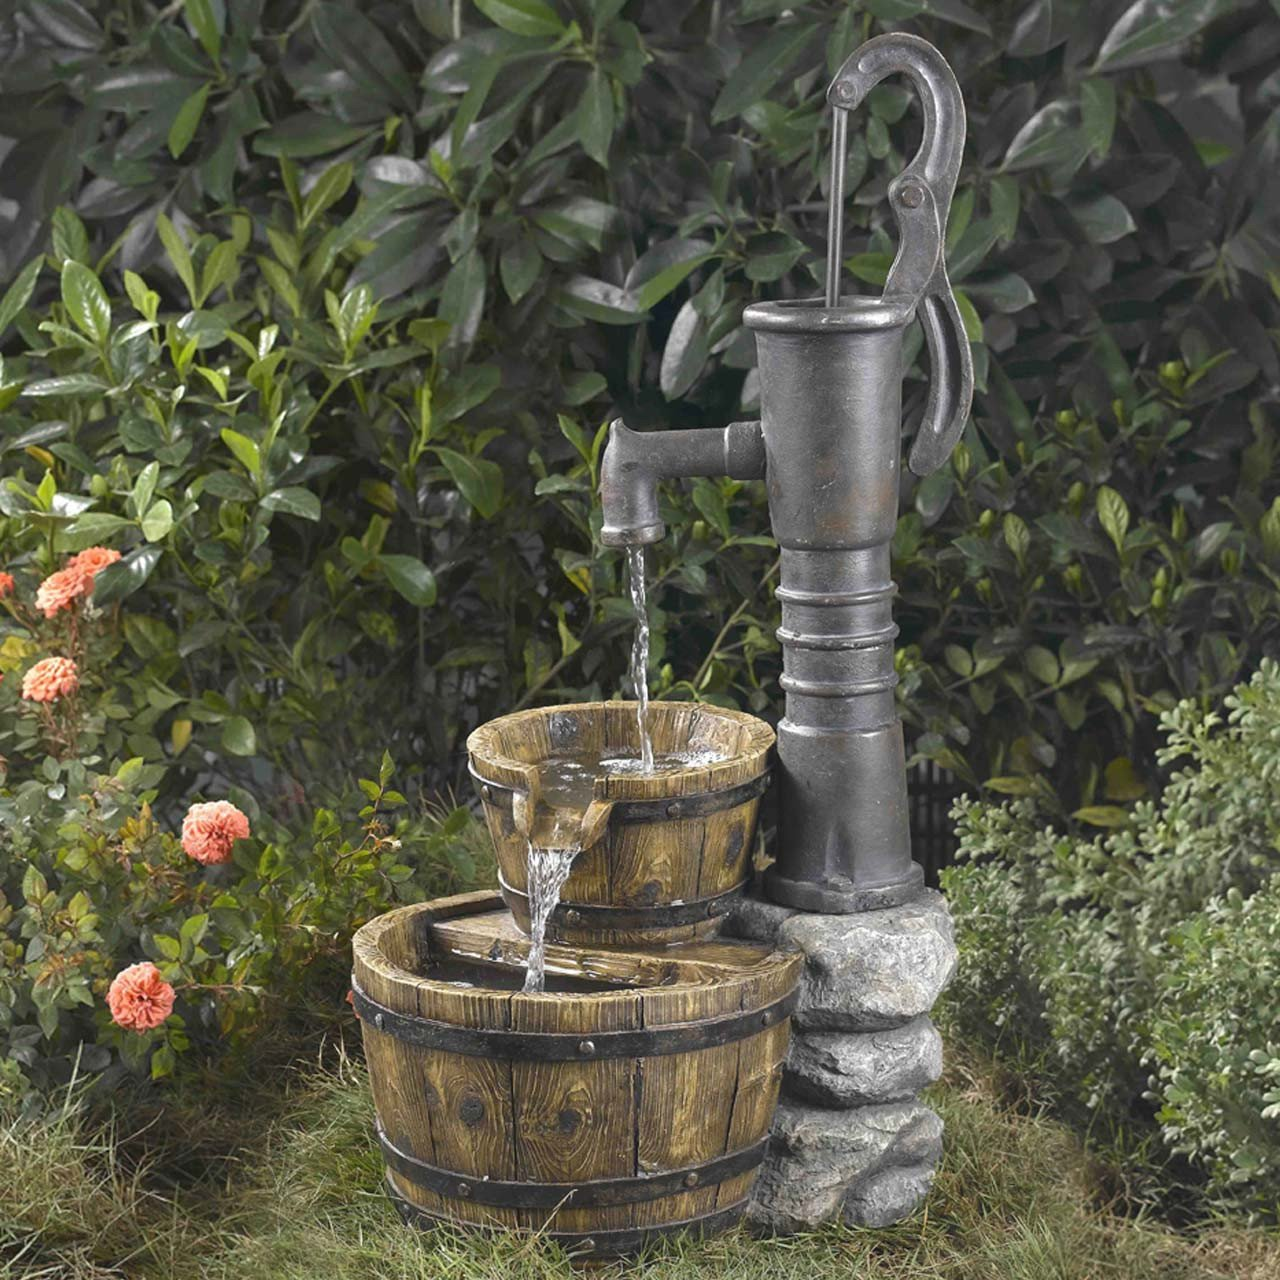 Beautiful Rustic Large Garden Deck Patio Water Pump Buckets Outdoor Fountain- Looks Like Old Hand Pump- Ornate Rustic Realistic Perfect Conversation Piece With Electric Powered Cascading Water Fall